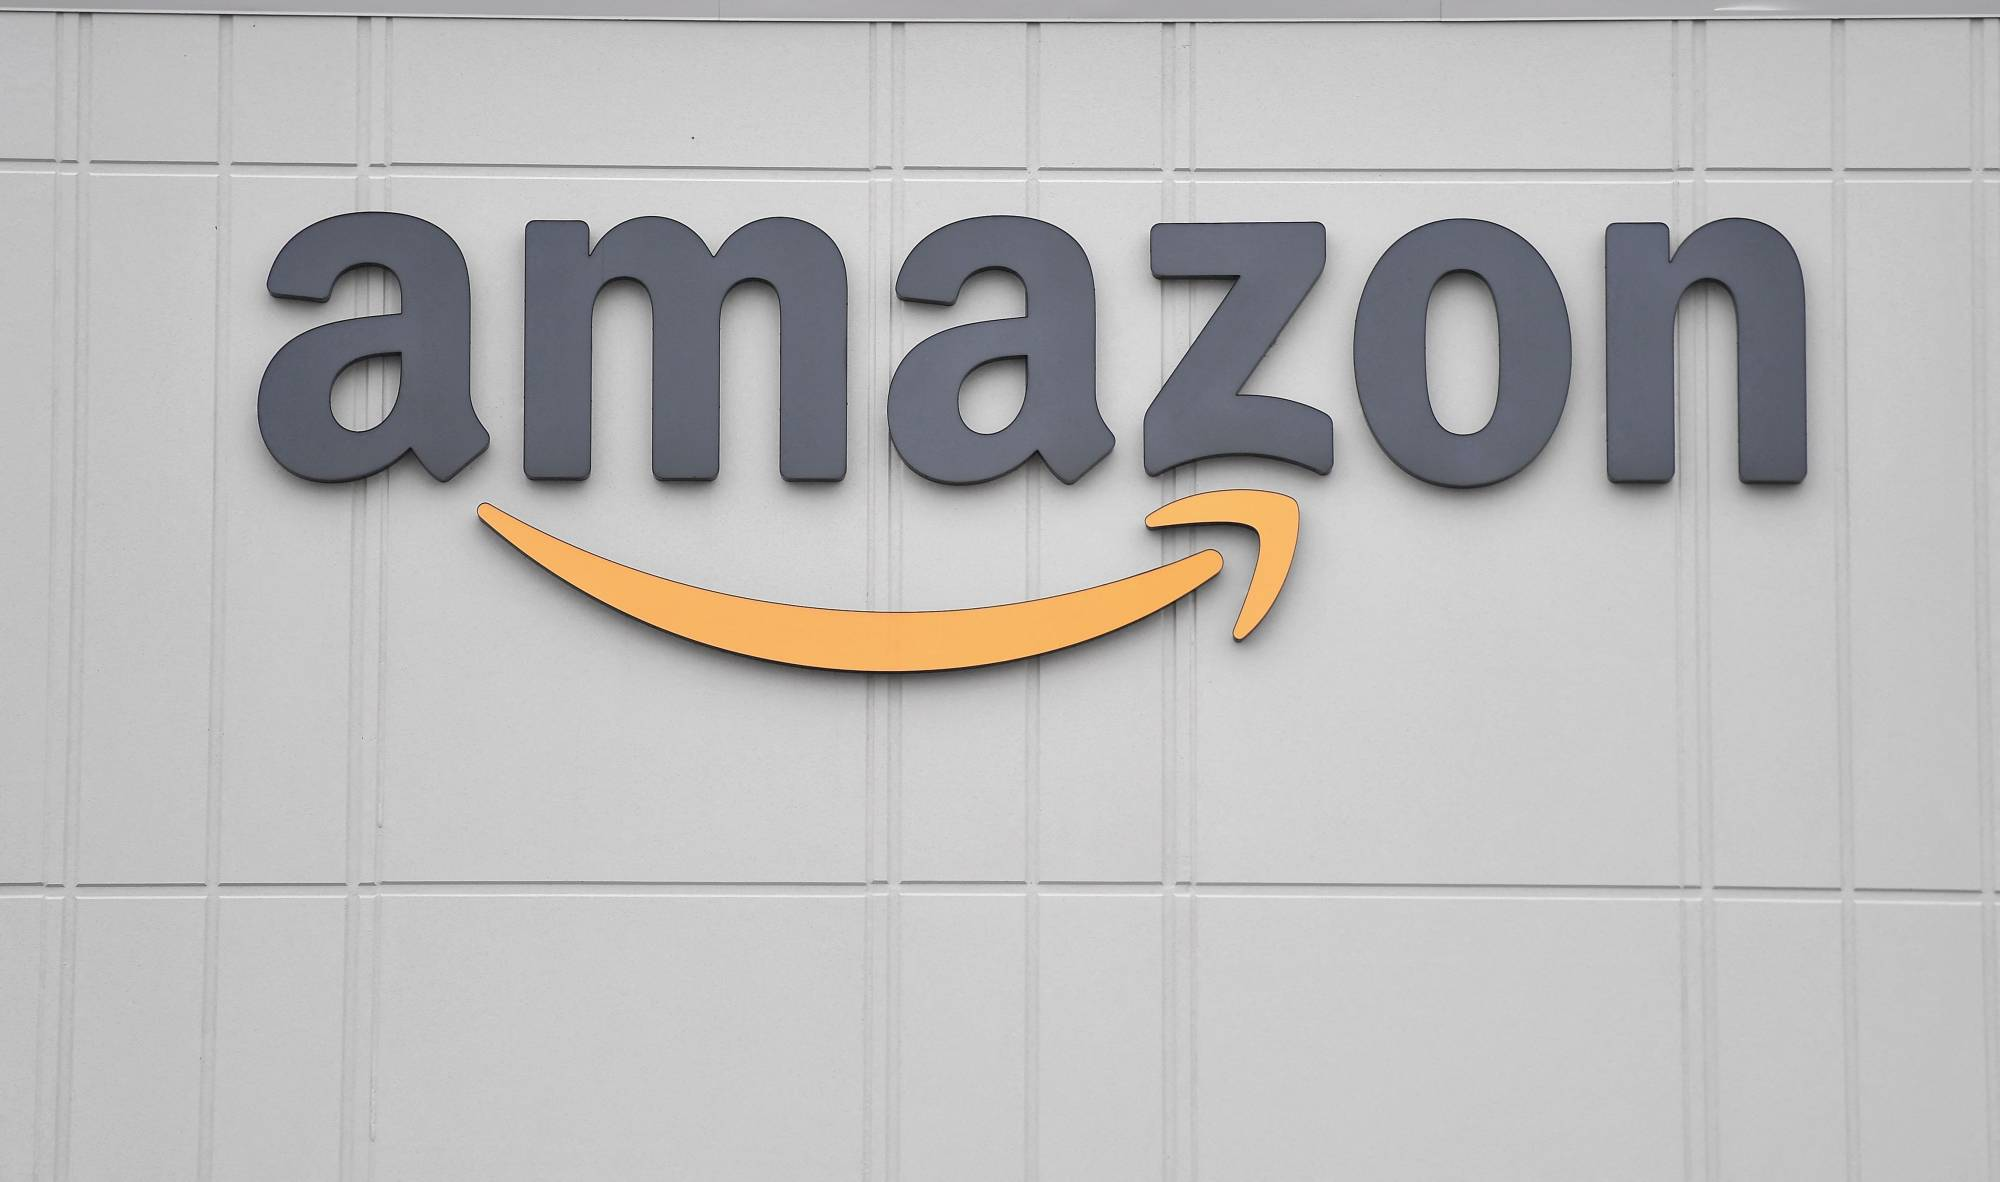 Websites and apps featuring pirated movies and TV shows make about $1.3 billion from advertising each year, including from major companies like Amazon.com Inc., according to a study.   AFP-JIJI